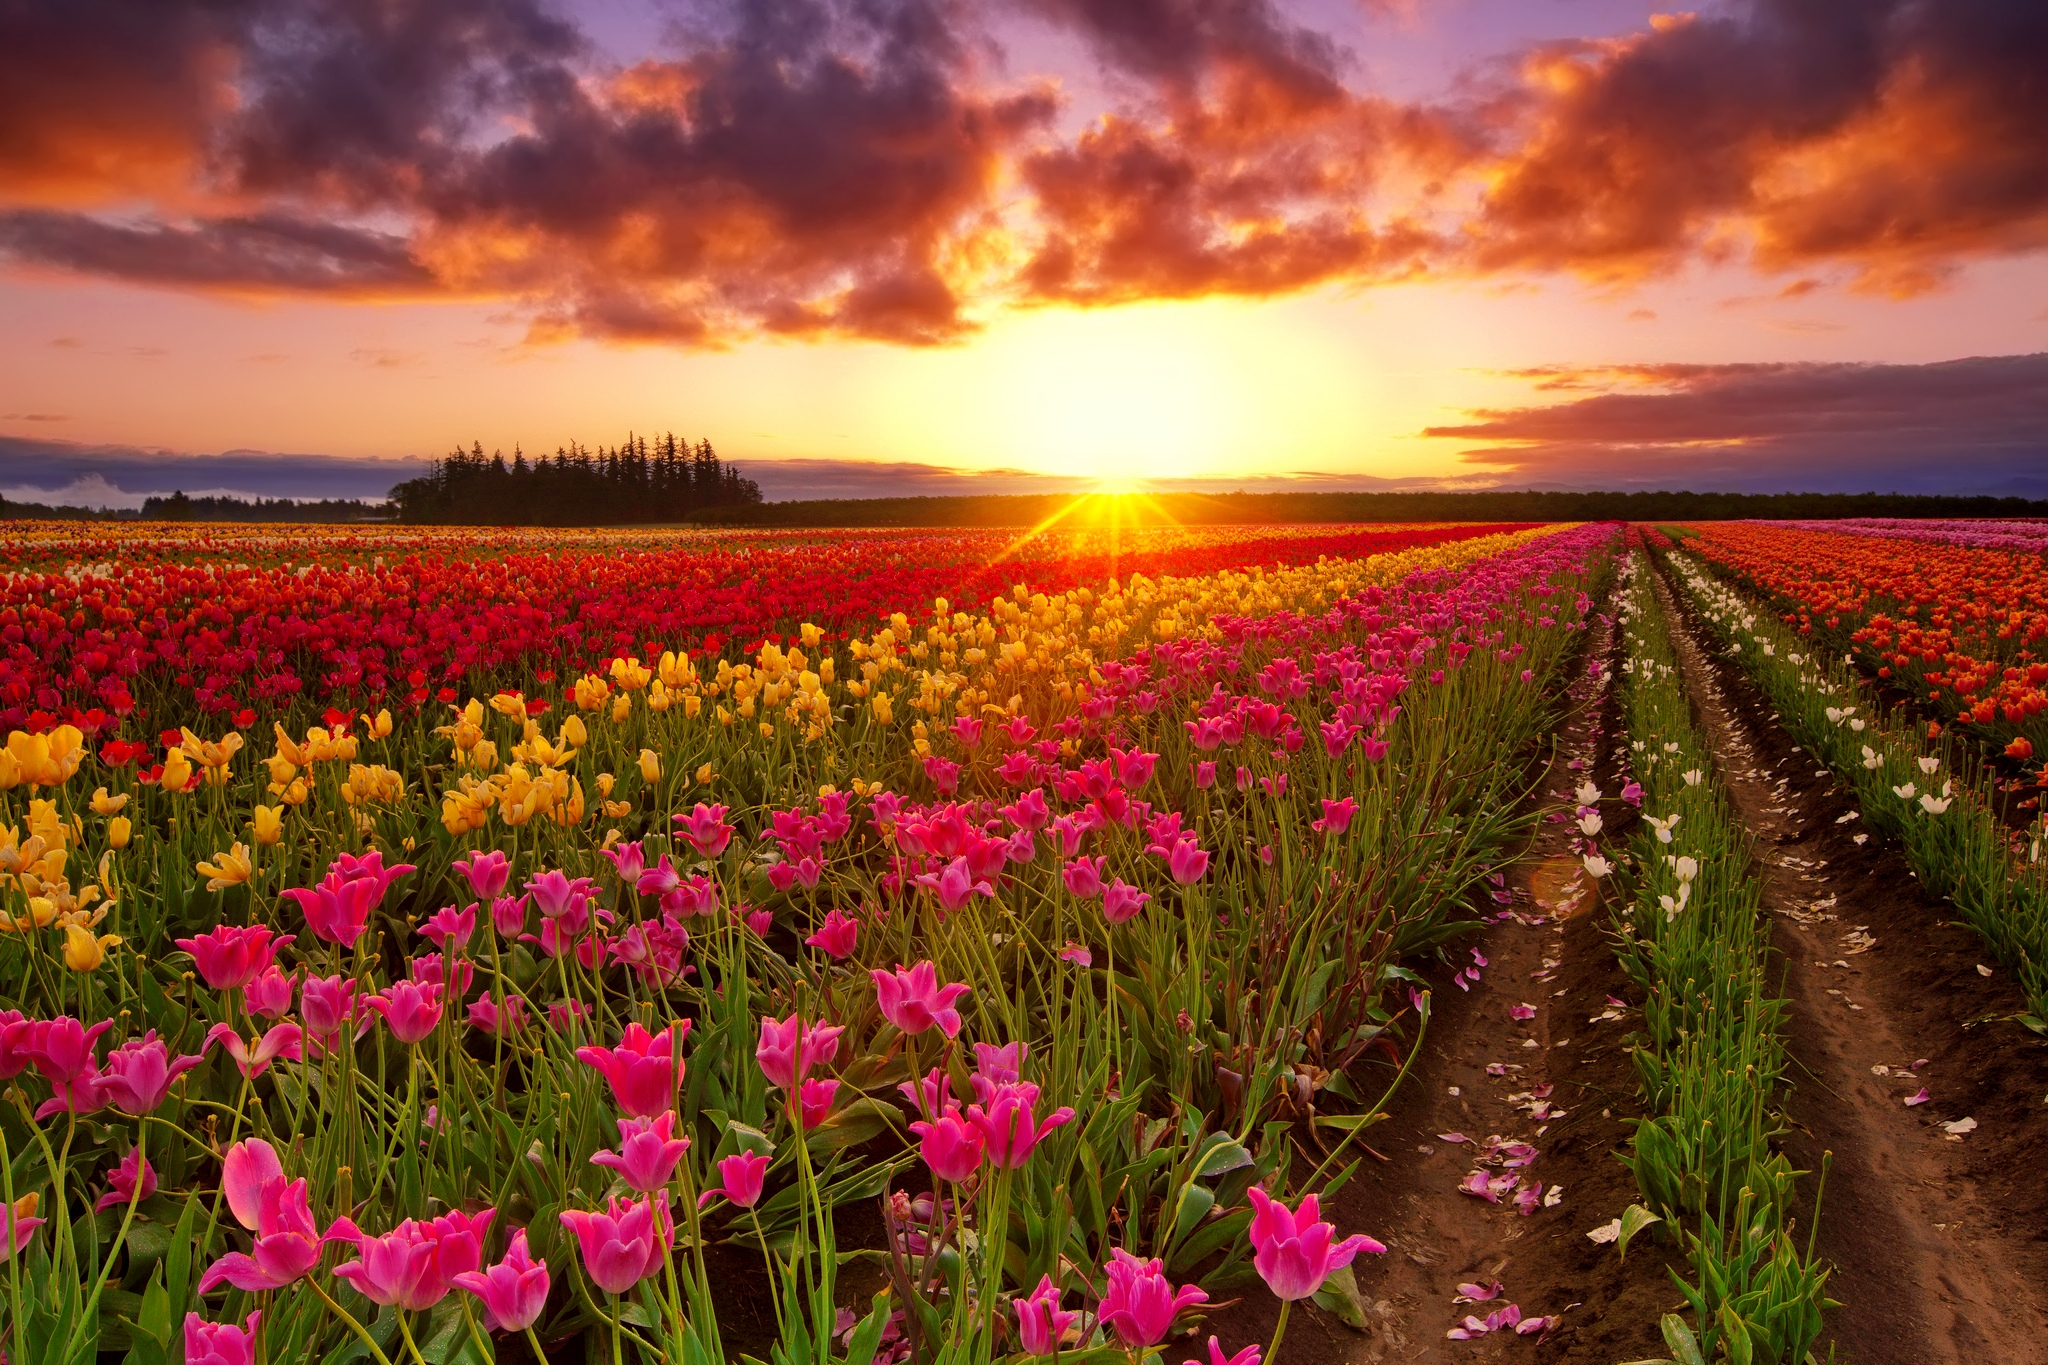 Red Iphone 7 Plus Wallpaper Tulip Field At Sunset Hd Wallpaper Background Image